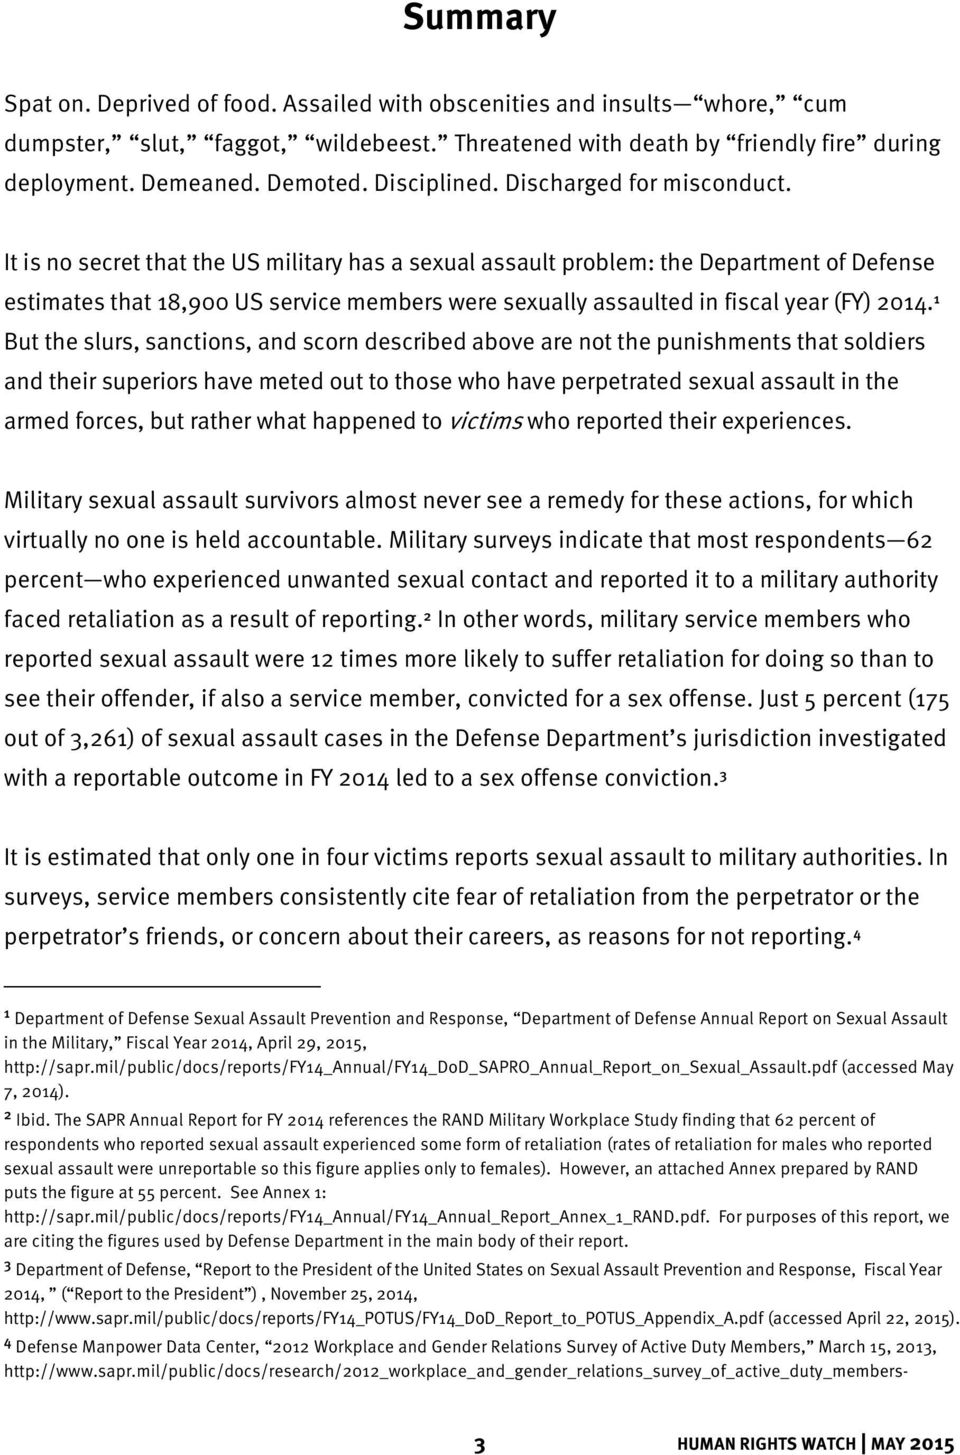 It is no secret that the US military has a sexual assault problem: the Department of Defense estimates that 18,900 US service members were sexually assaulted in fiscal year (FY) 2014.